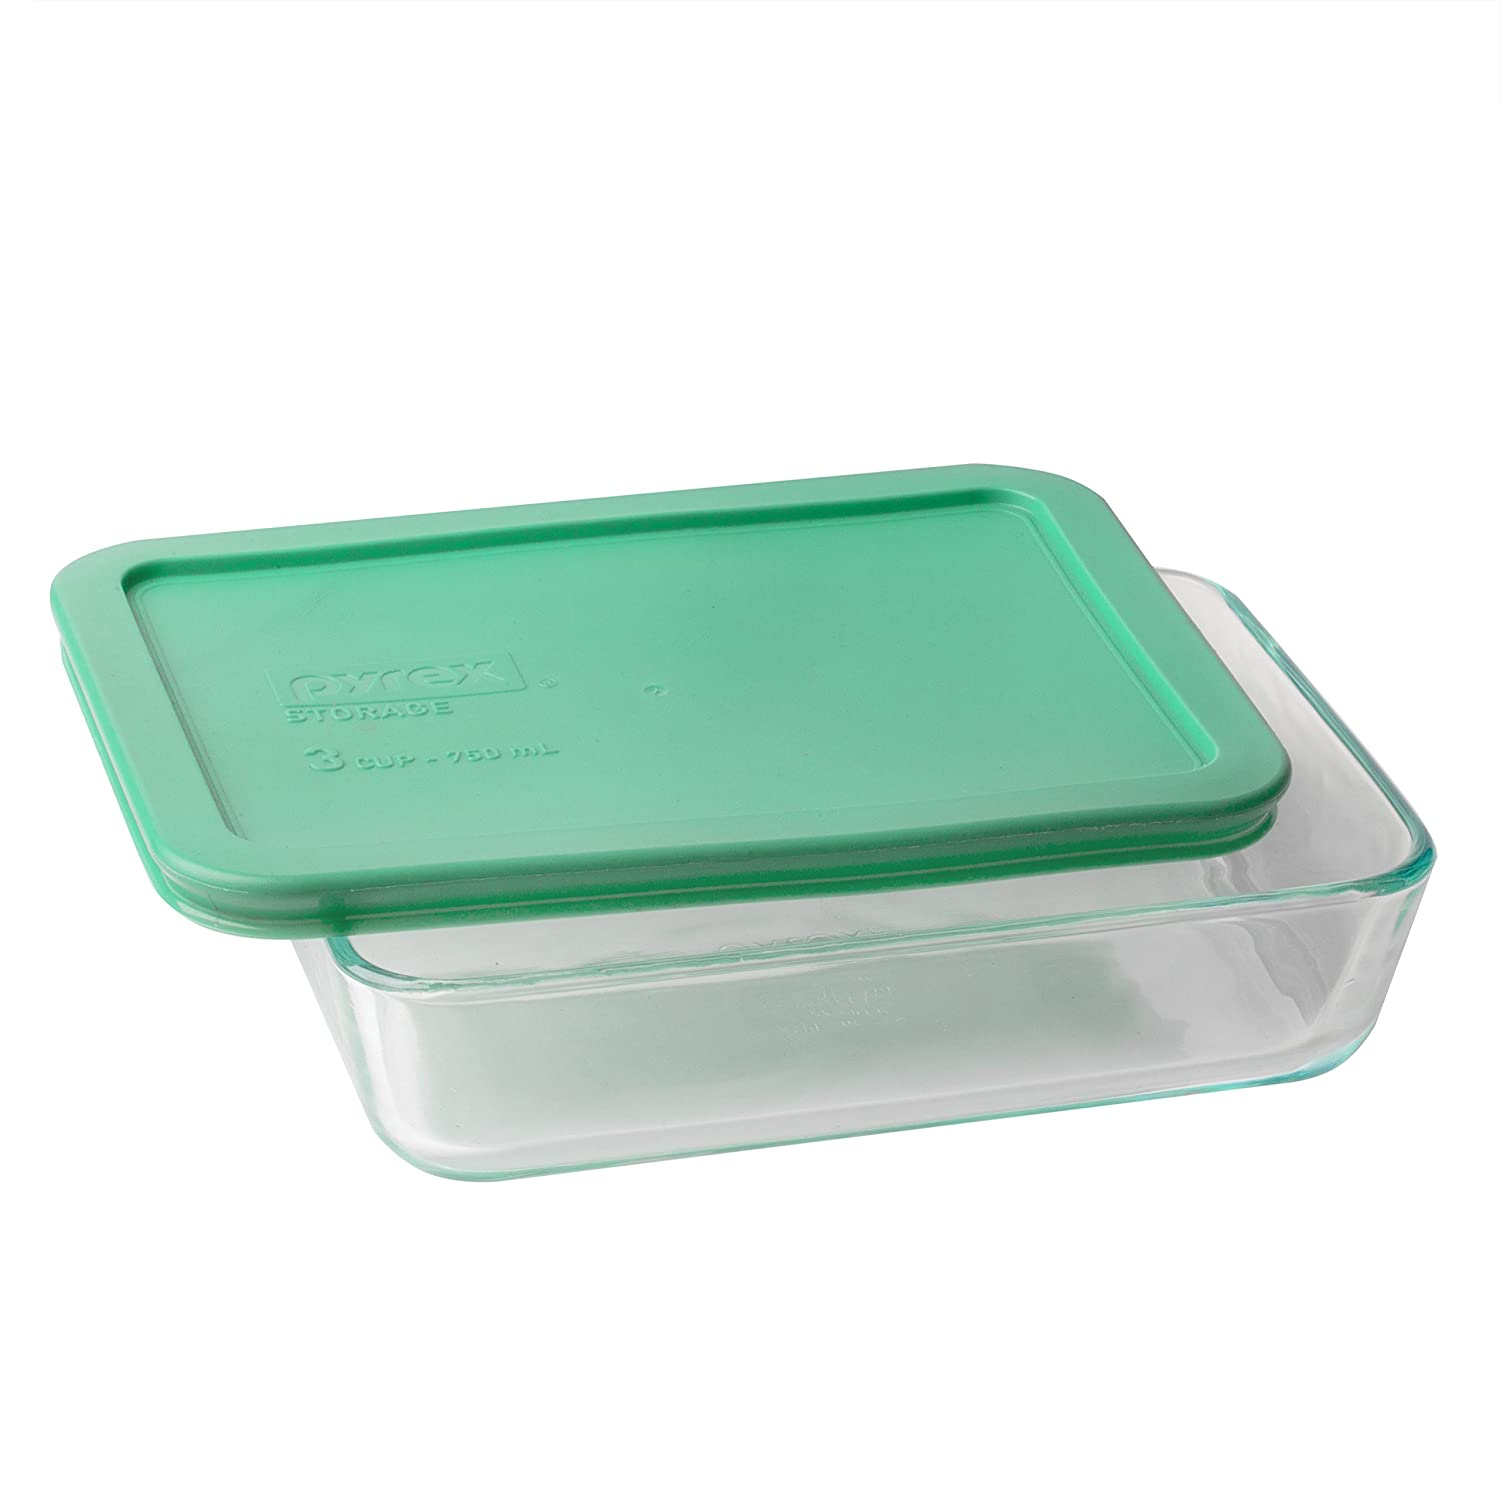 pyrex food storage set 18 piece glass kitchen lunch bowls containers gift new 689826761670 ebay. Black Bedroom Furniture Sets. Home Design Ideas